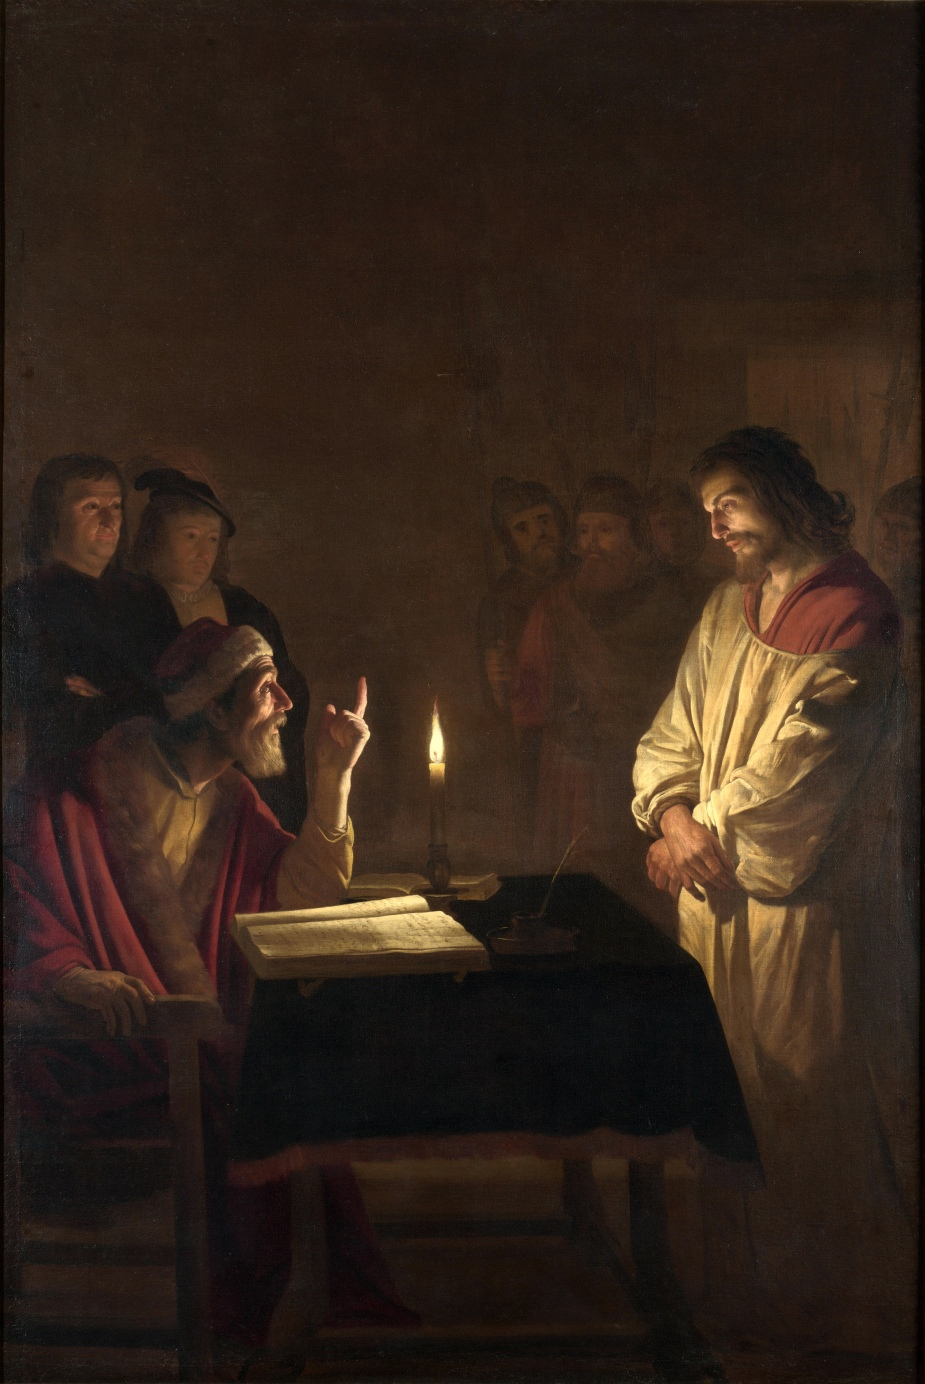 Gerard_van_Honthorst_-_Christ_before_the_High_Priest